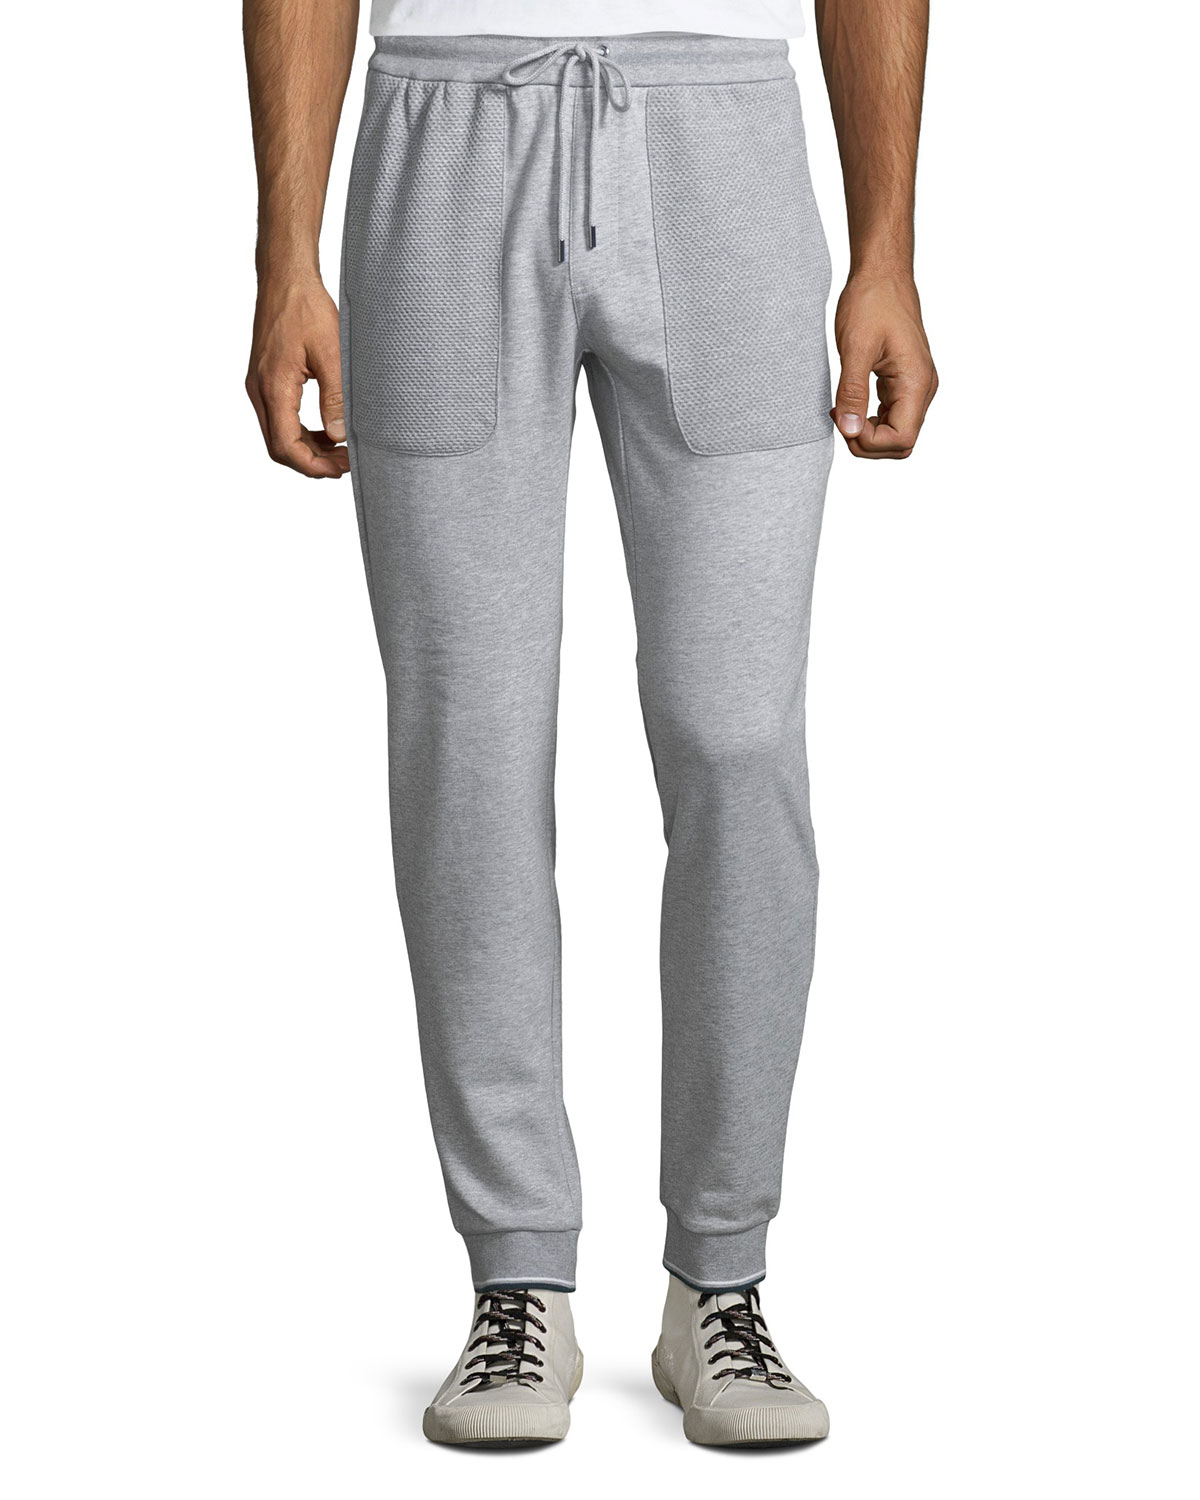 Men's Textured Cotton Sweatpants